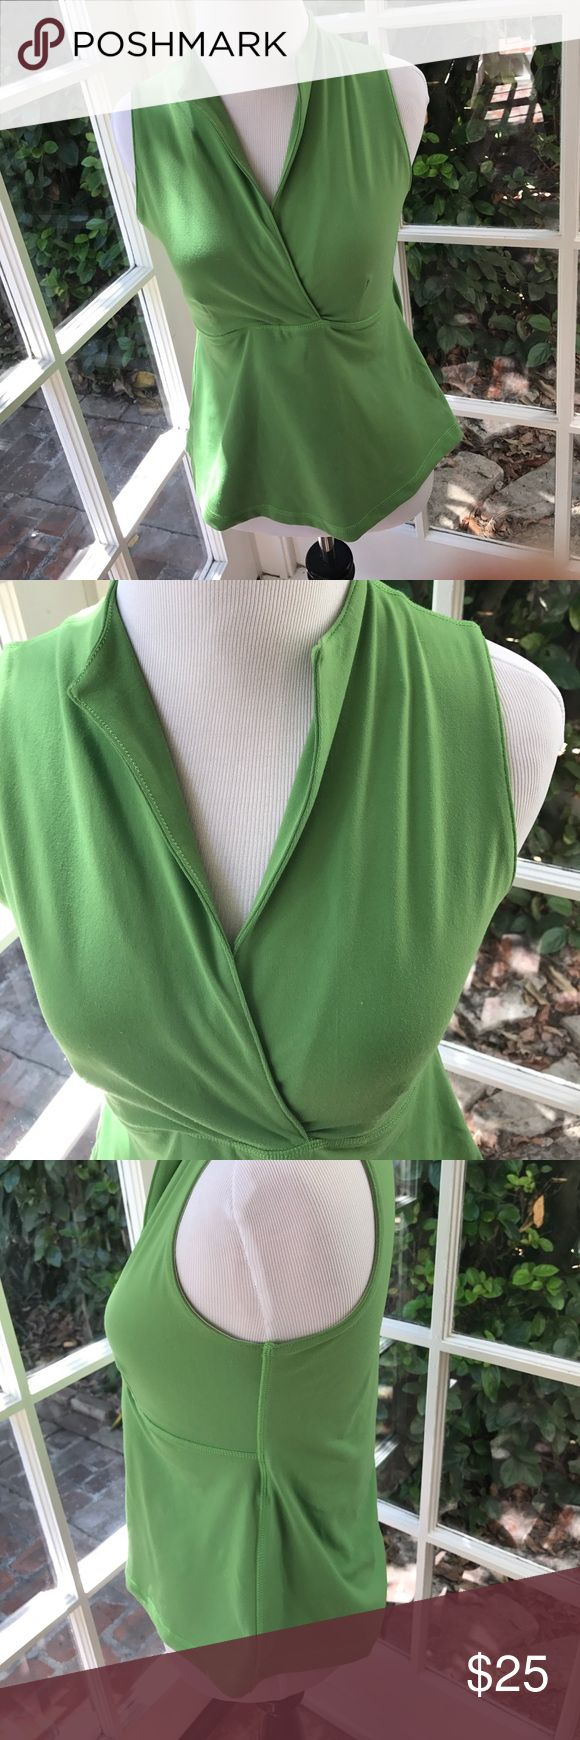 Lululemon size 12 green tank This is an awesome tank top!  Beautiful green color. Built in bra with deep v neck and collar. Small stain on inside of bra and Some spots on front too as pictured. 86% nylon and 14% Lycra. Size 12 but fits snug.  21 inches long. Pit to pit 26 inches. Vneck 10 inches. Waist 14 inches. lululemon athletica Tops Tank Tops